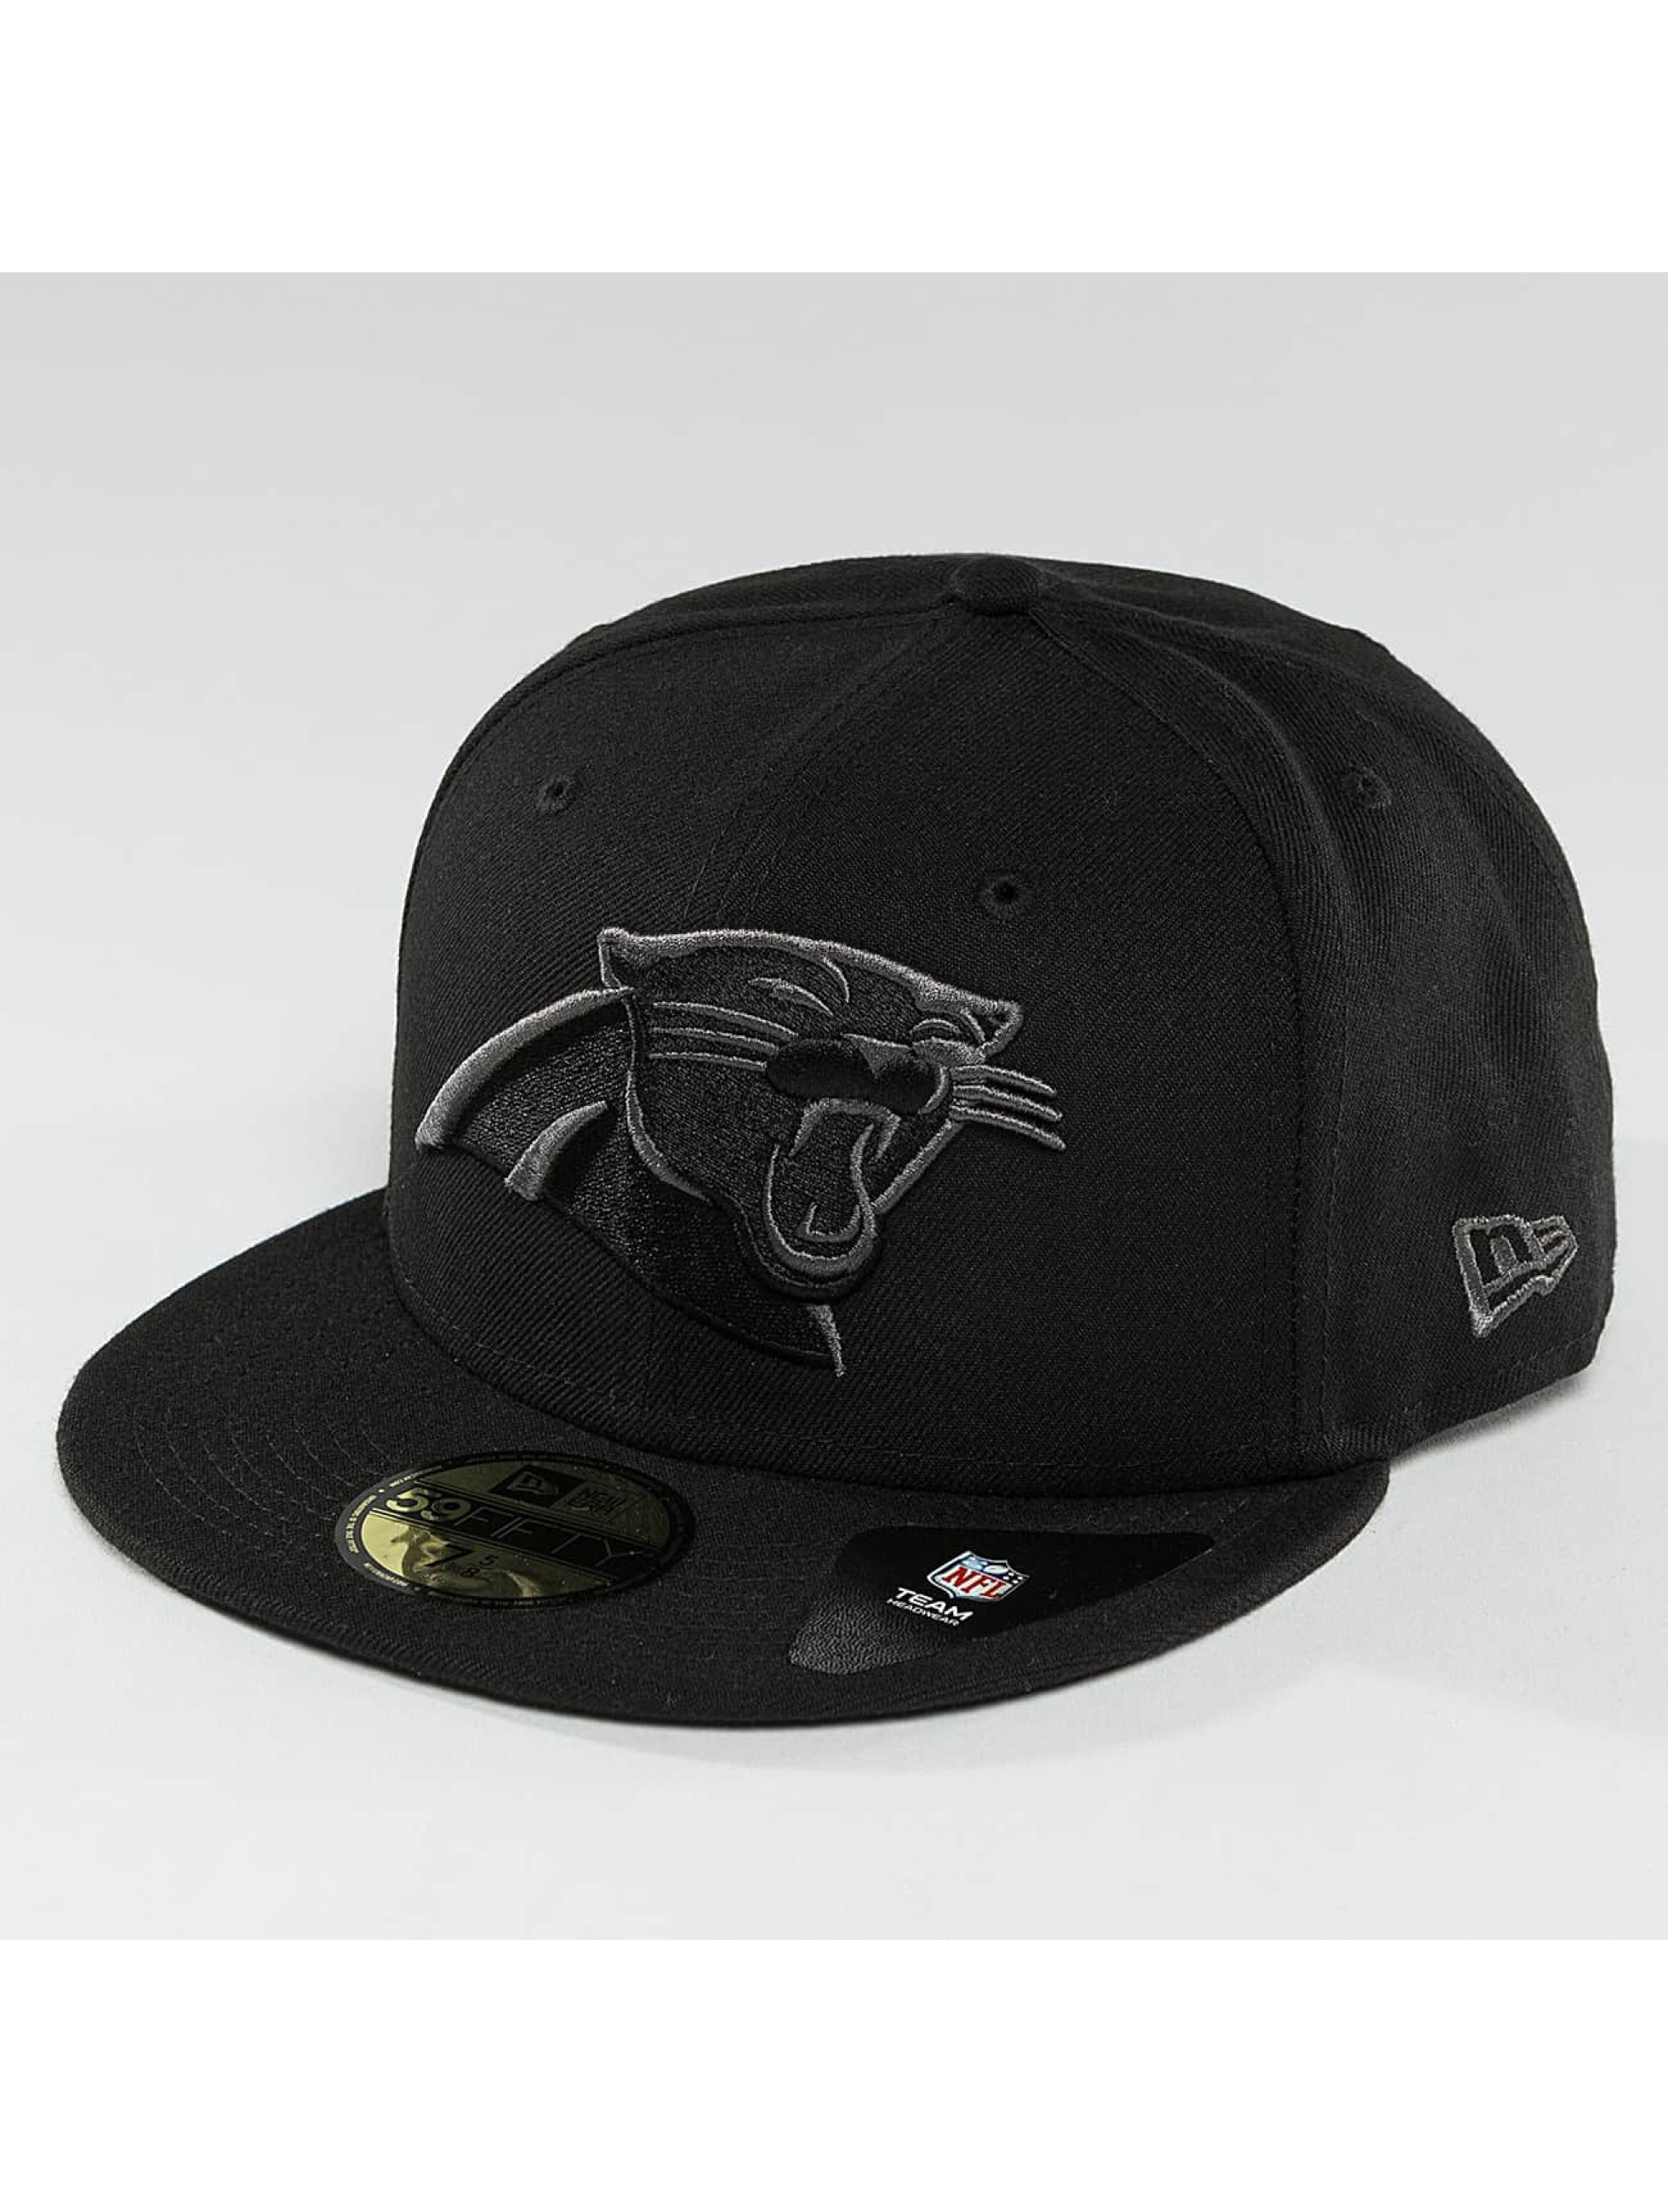 New Era Fitted Cap Black Graphite Carolina Panthers 59Fifty black